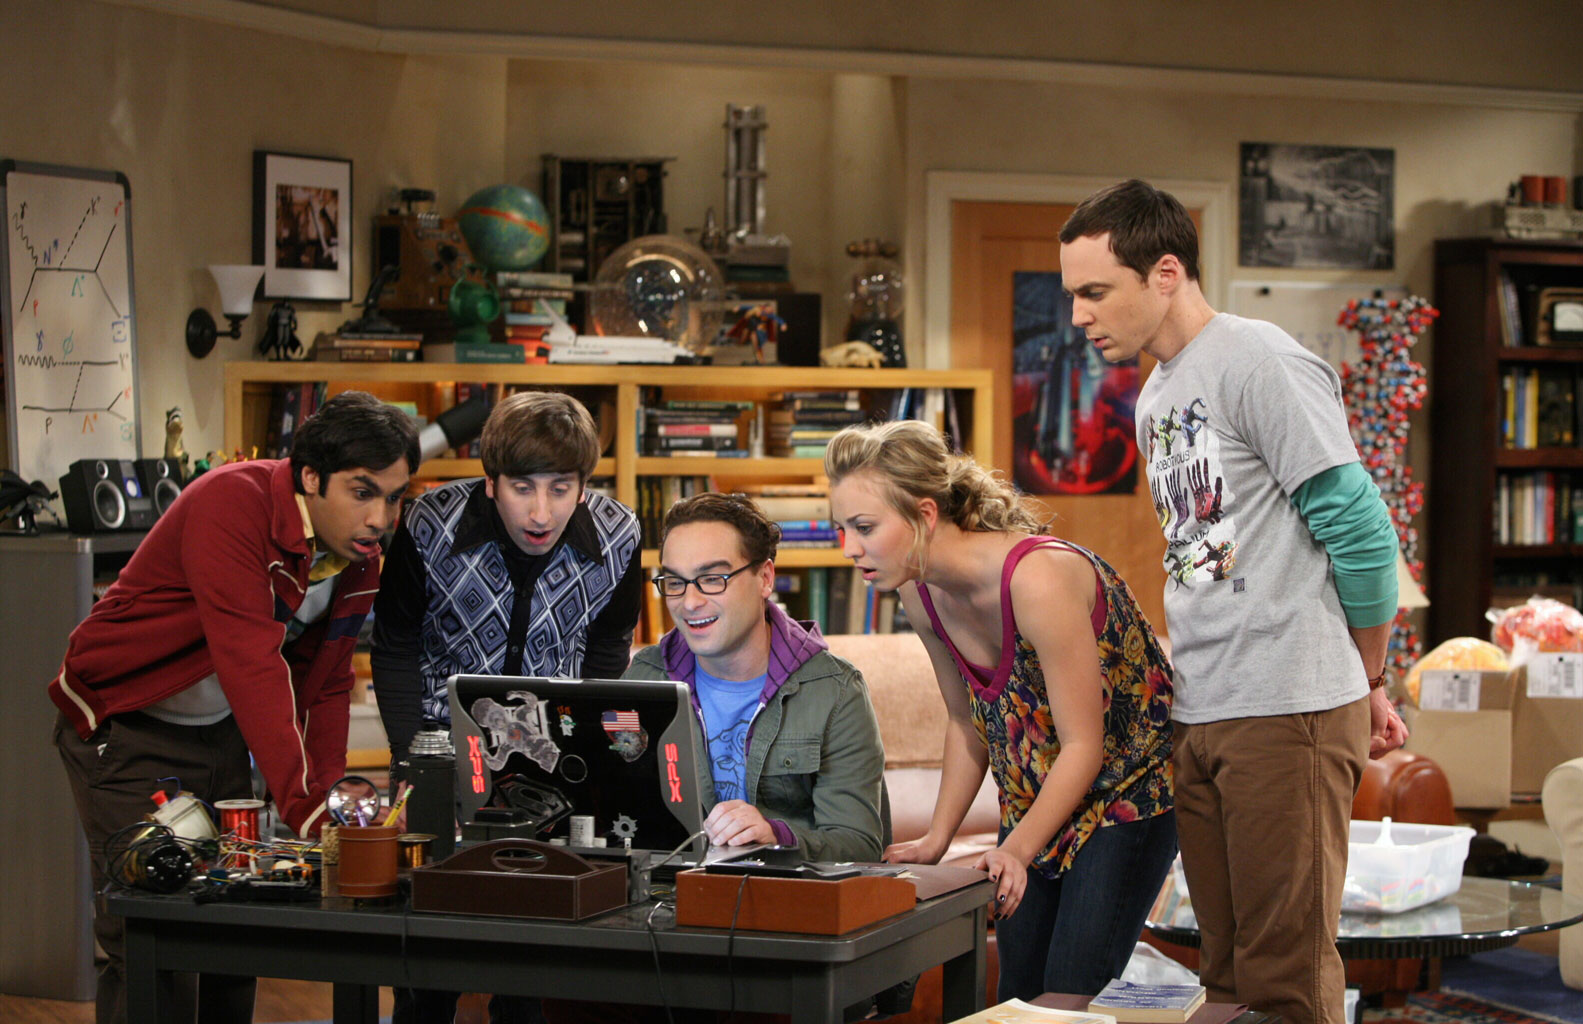 The Big Bagn Theory Tv And Movies The Big Bang Theory Stills And Clips